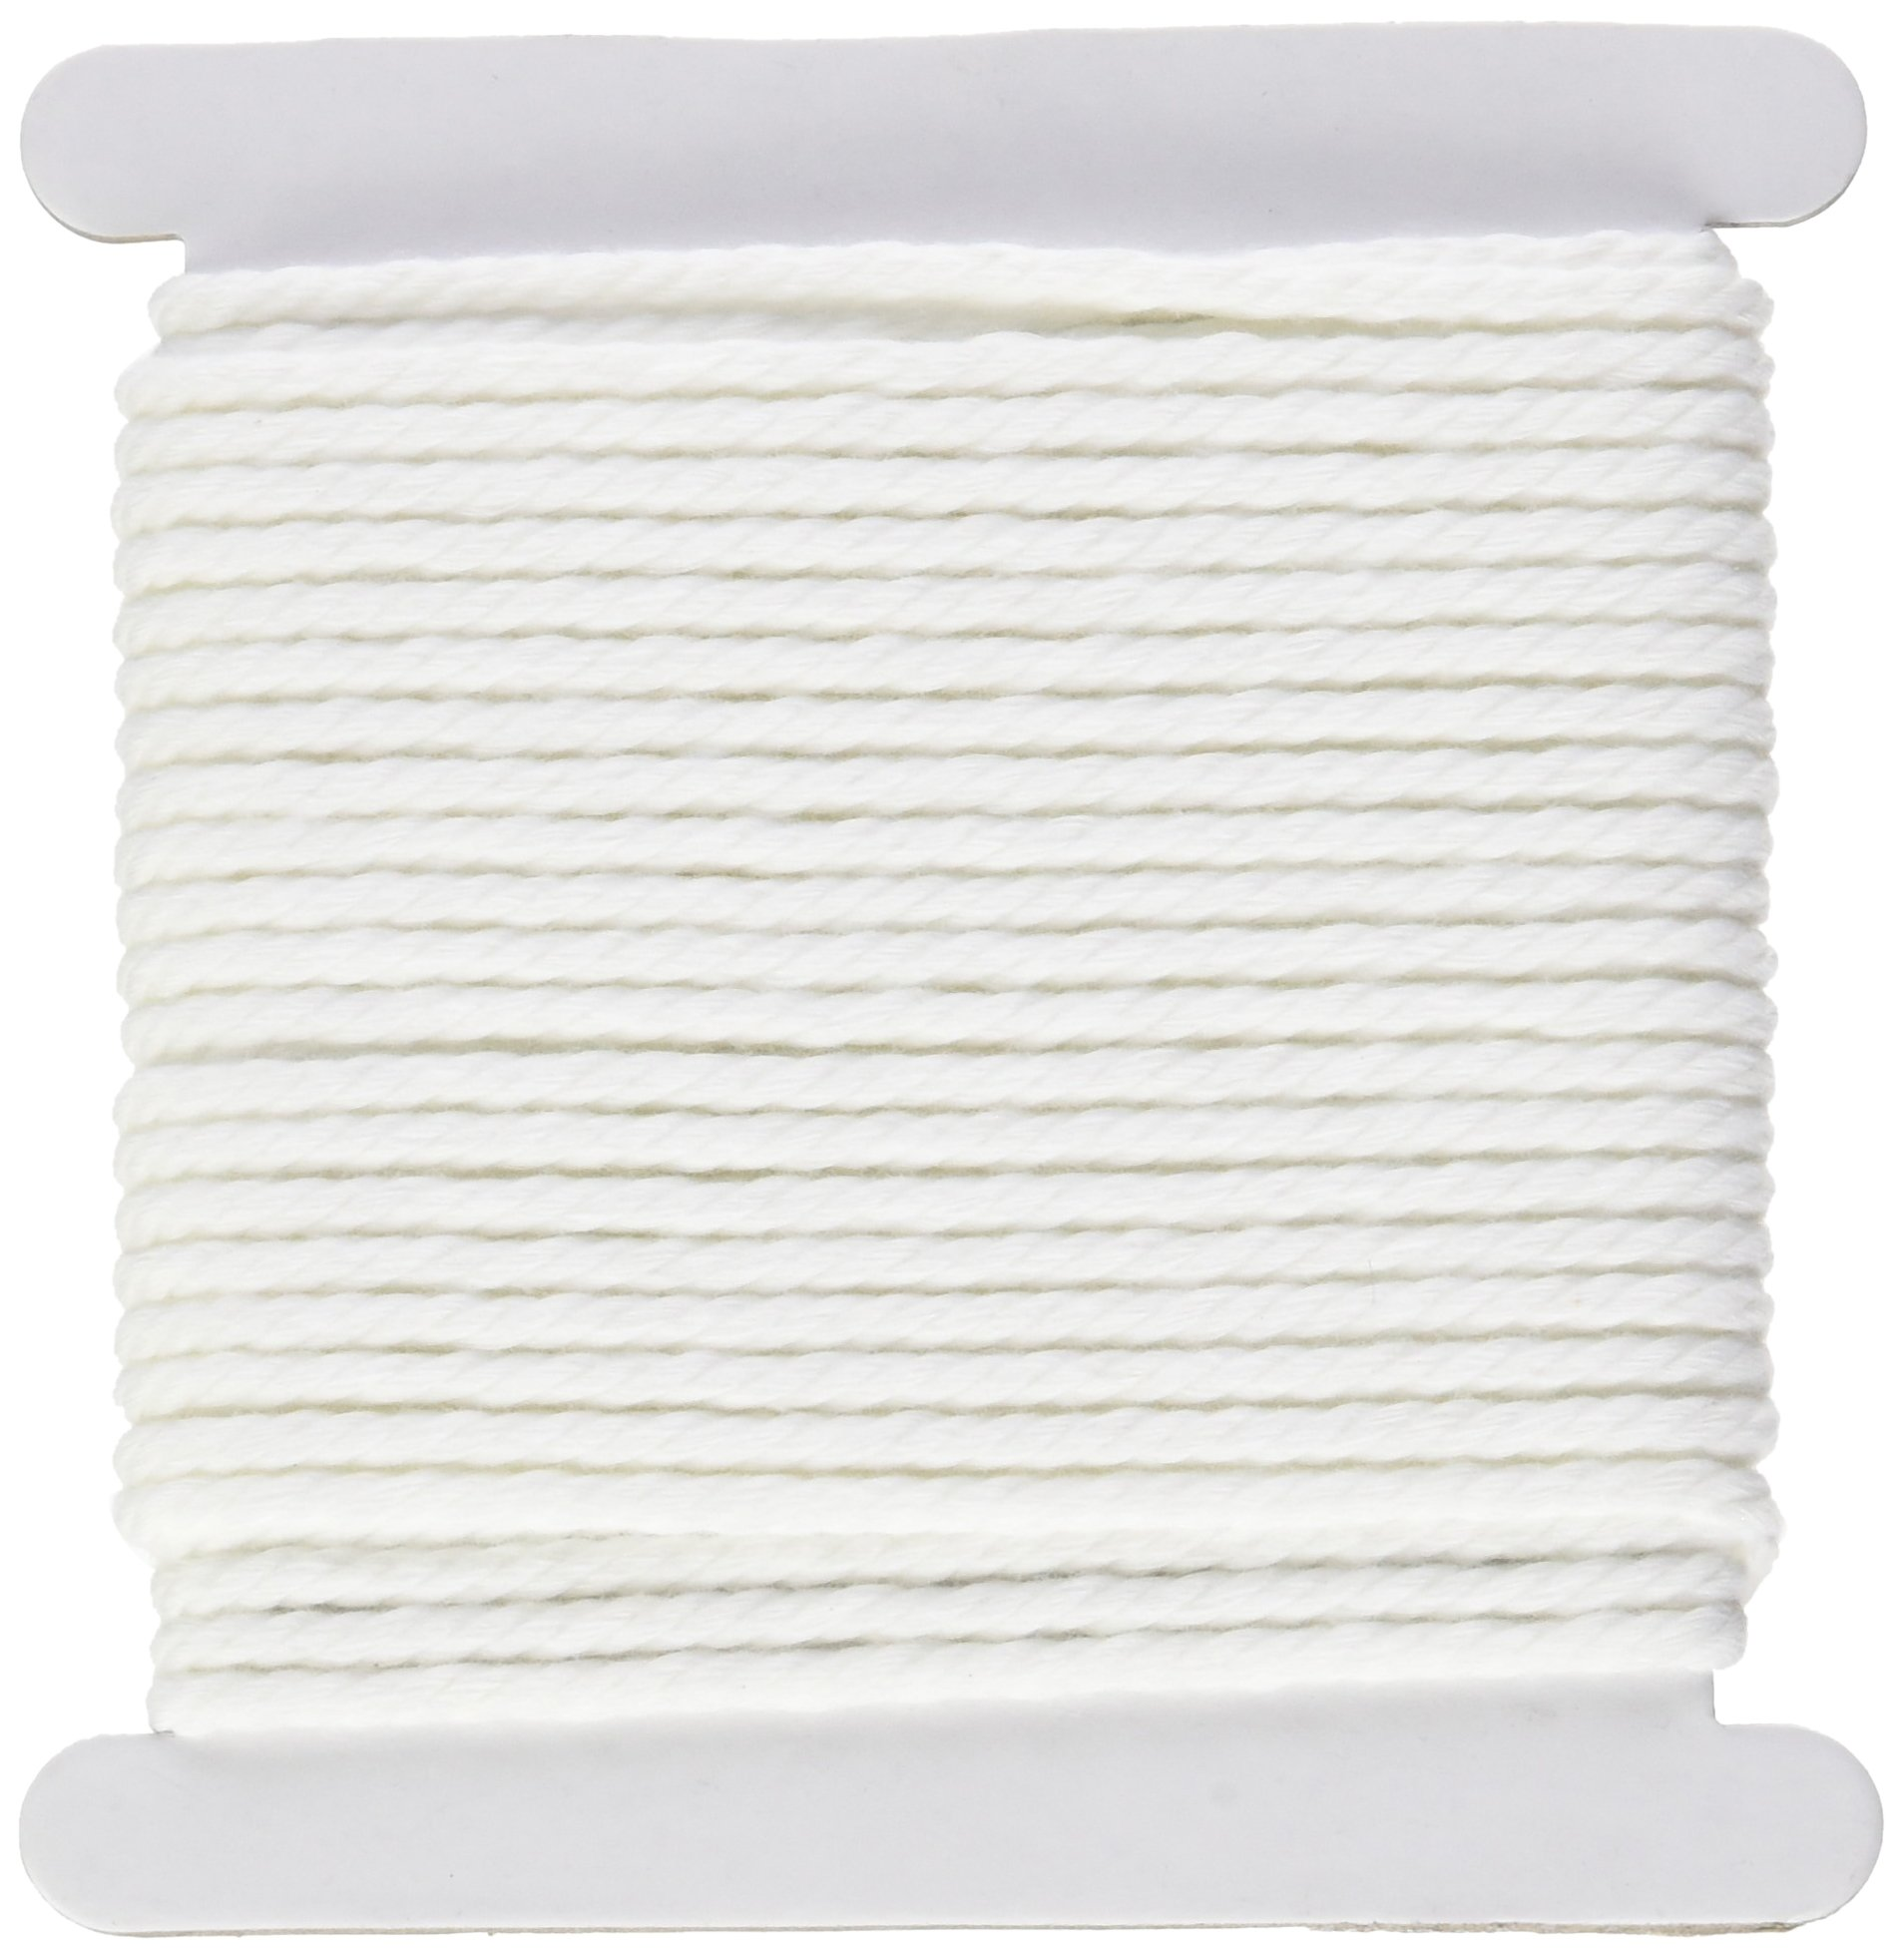 Dritz Home Cord Cable 5/32 in Wht 10yds 10 Yds. , 10 yd